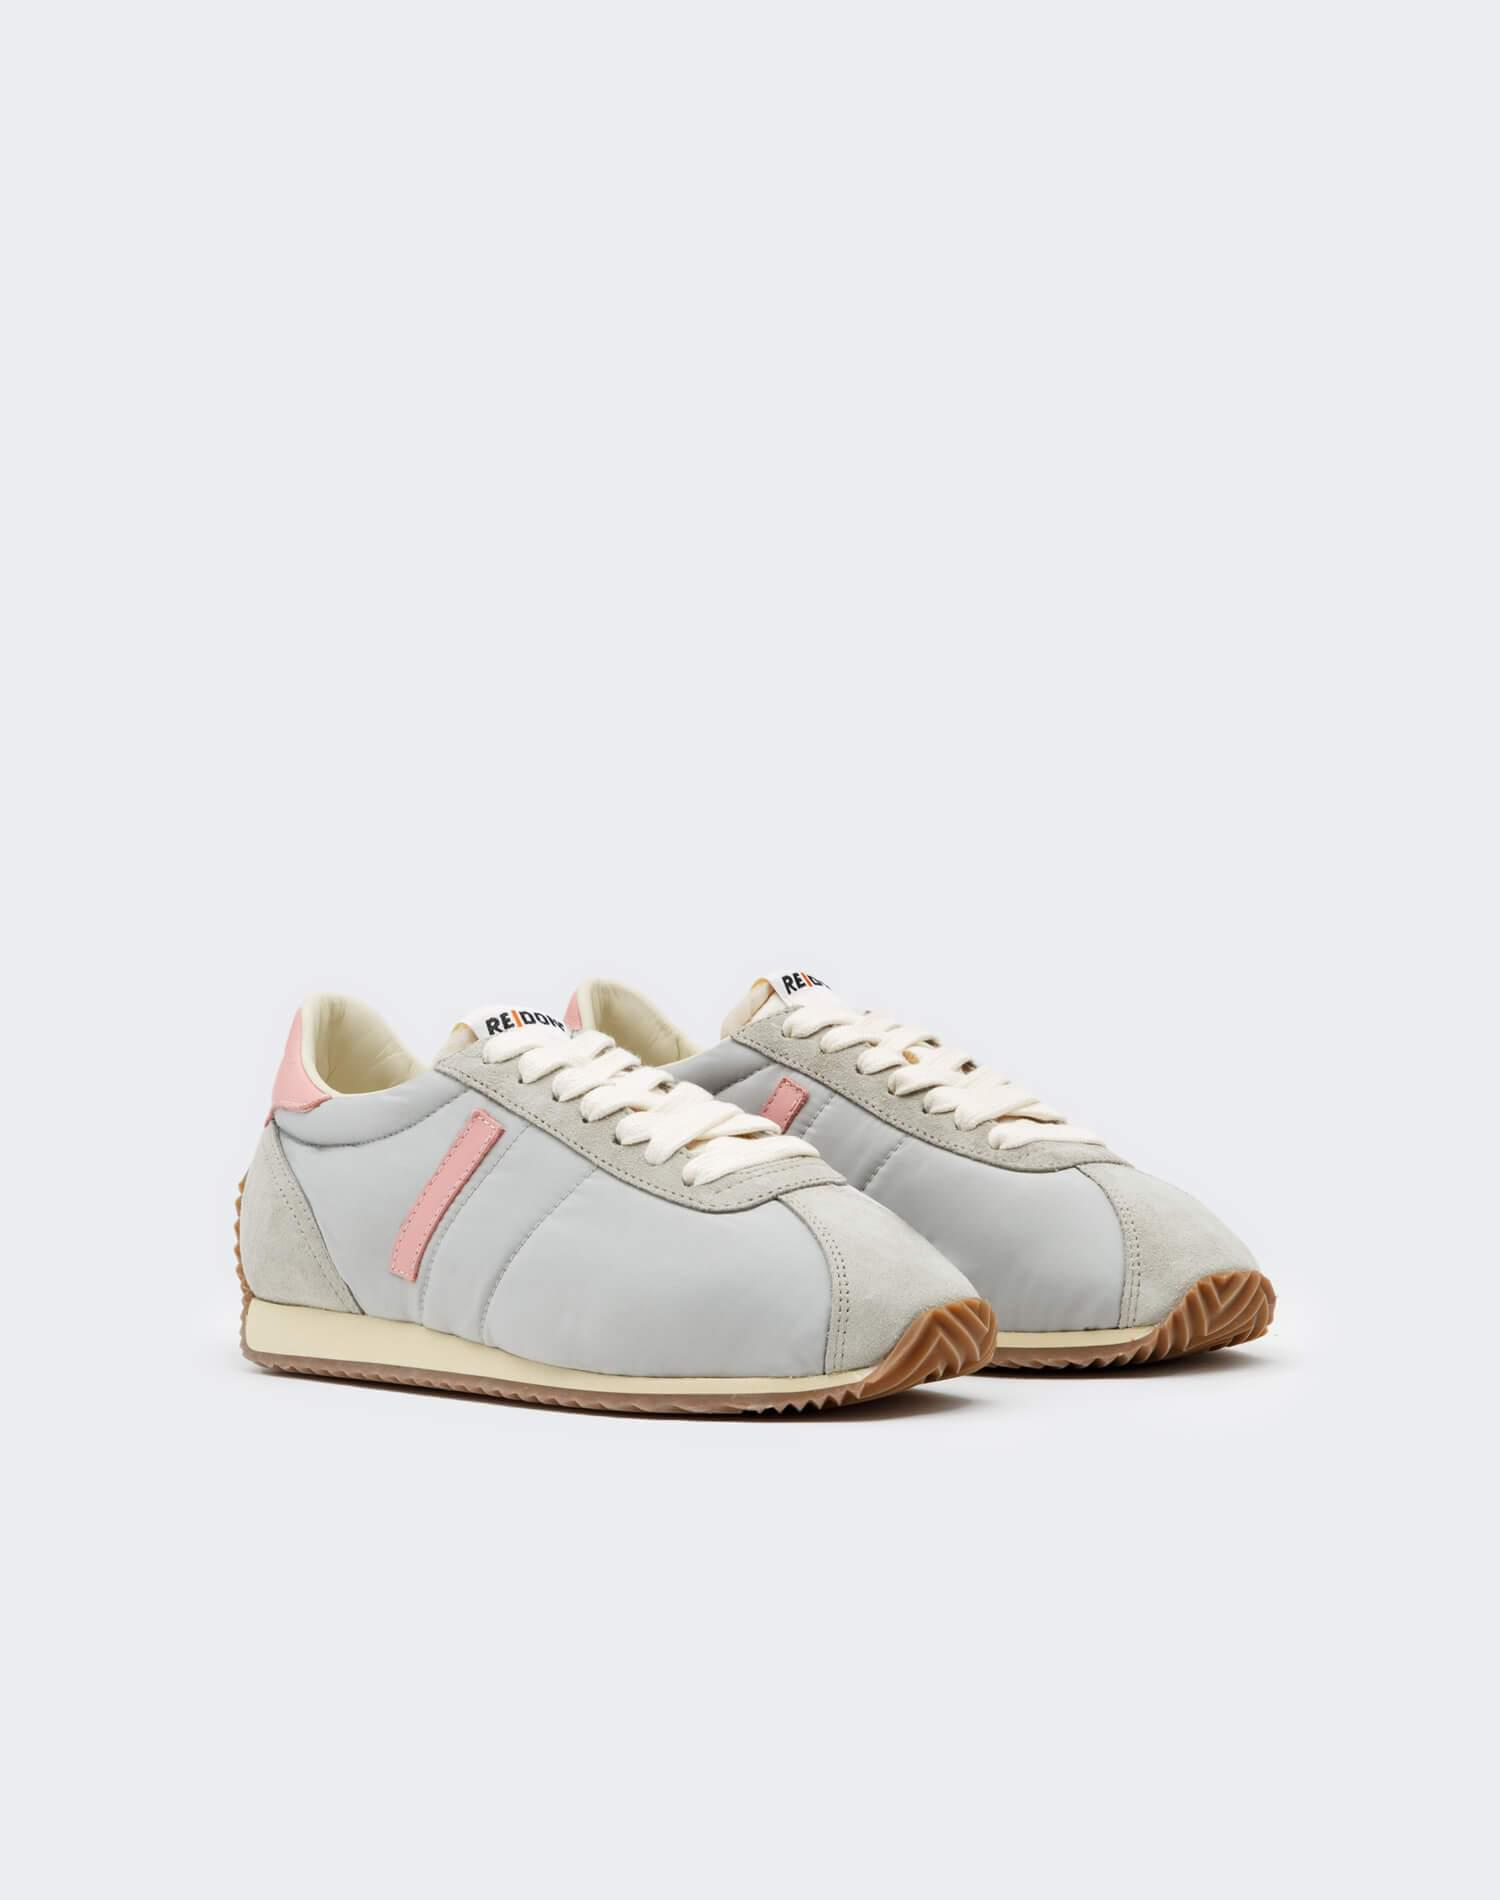 70s Runner Shoe - Light Grey and Pink 1